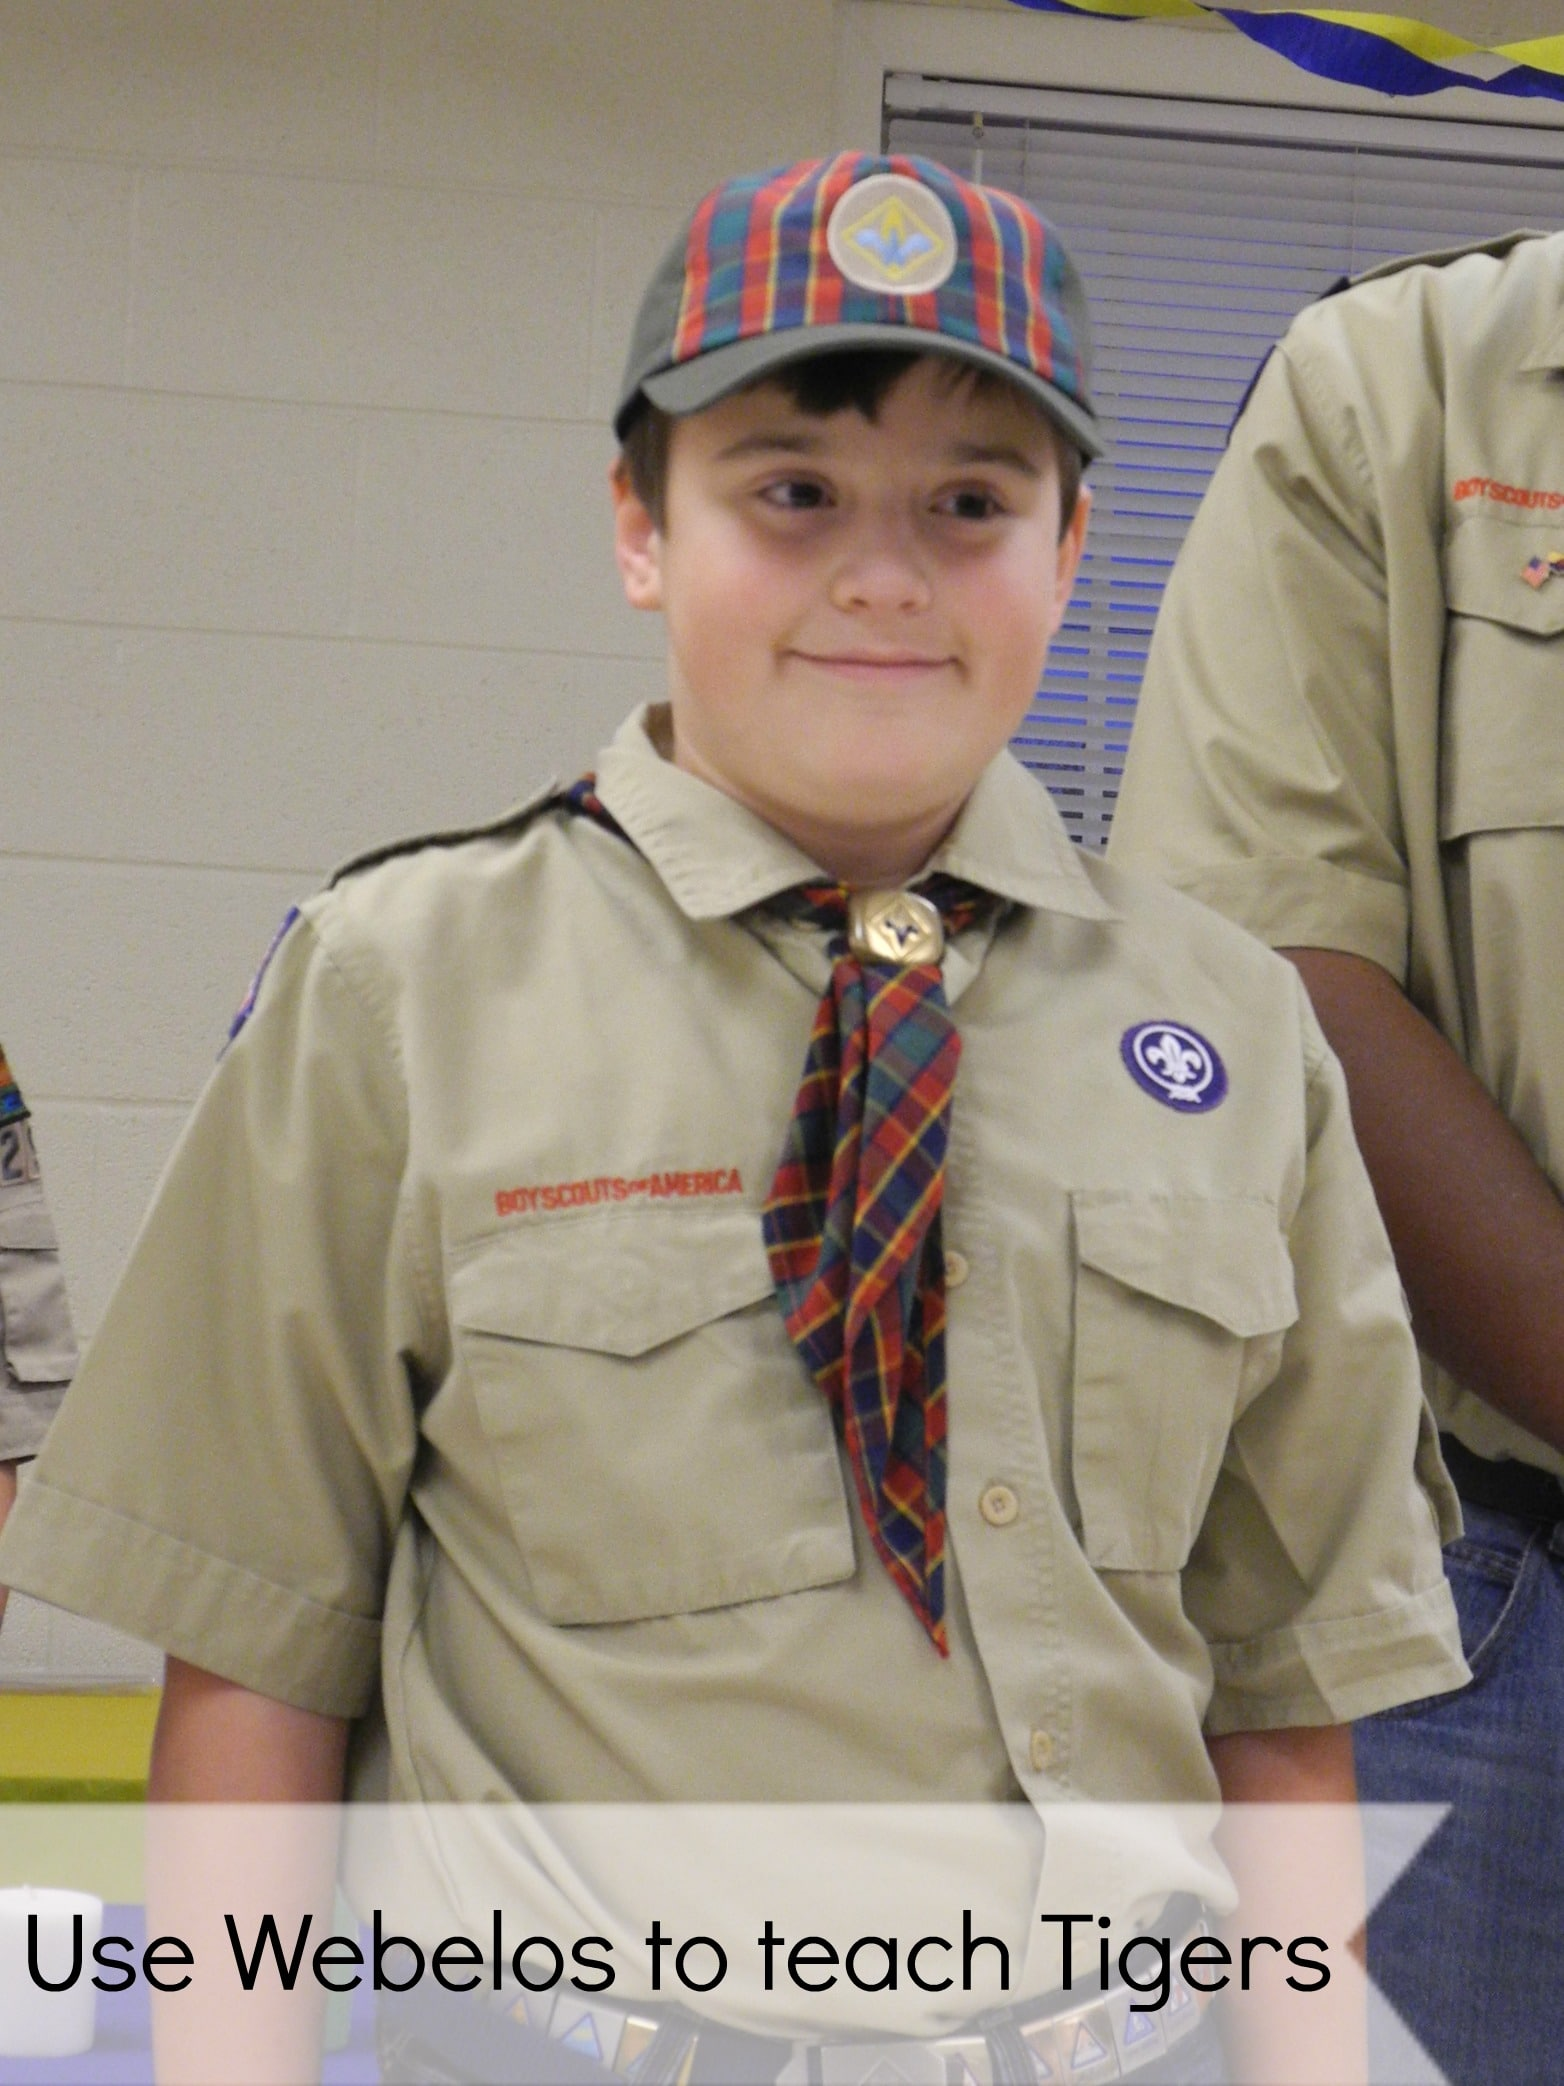 webelos to teach tigers